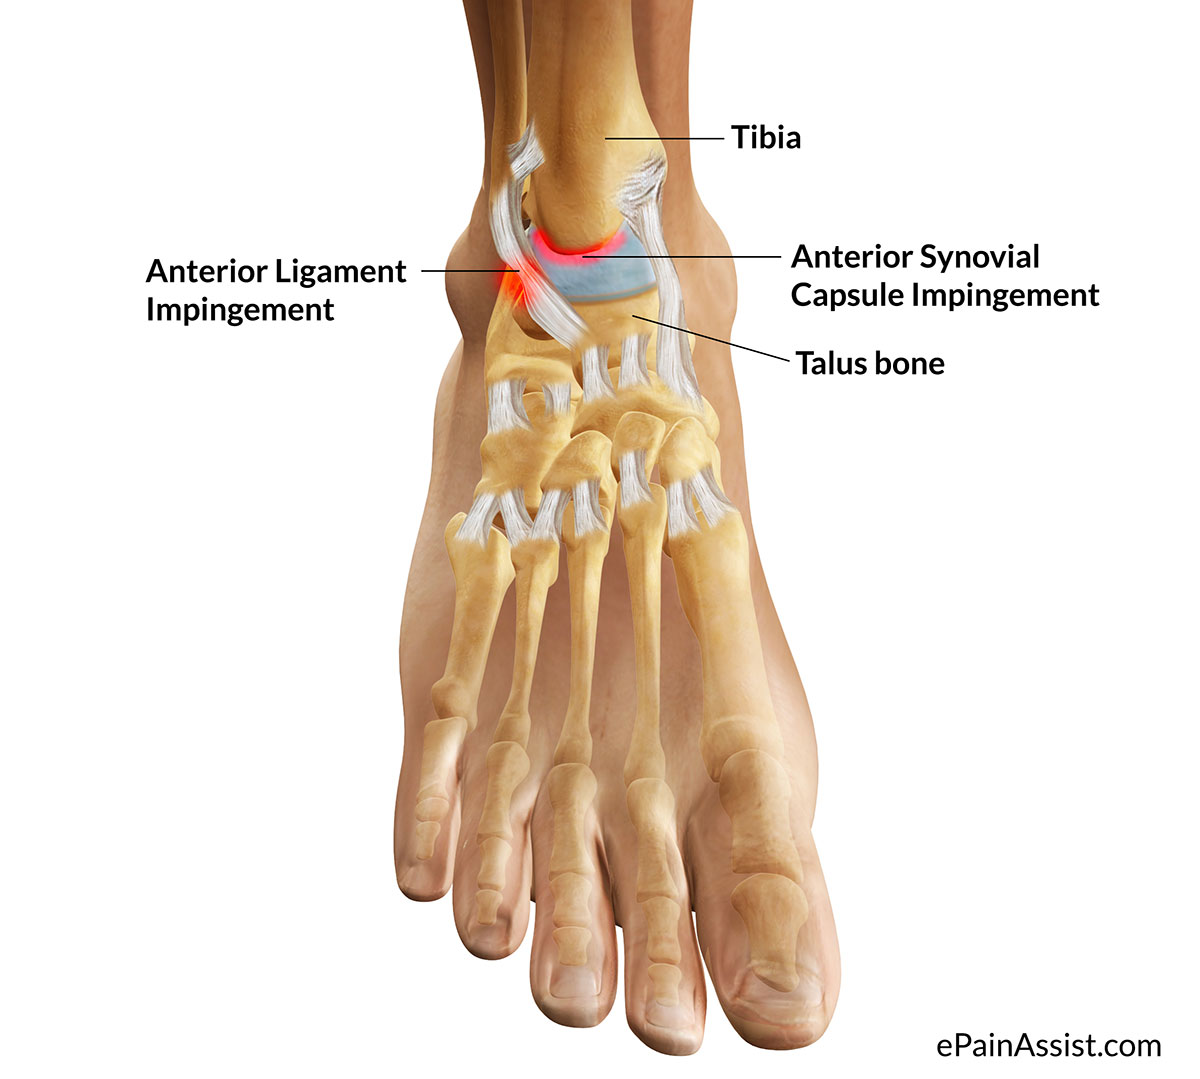 Causes of Ankle Impingement